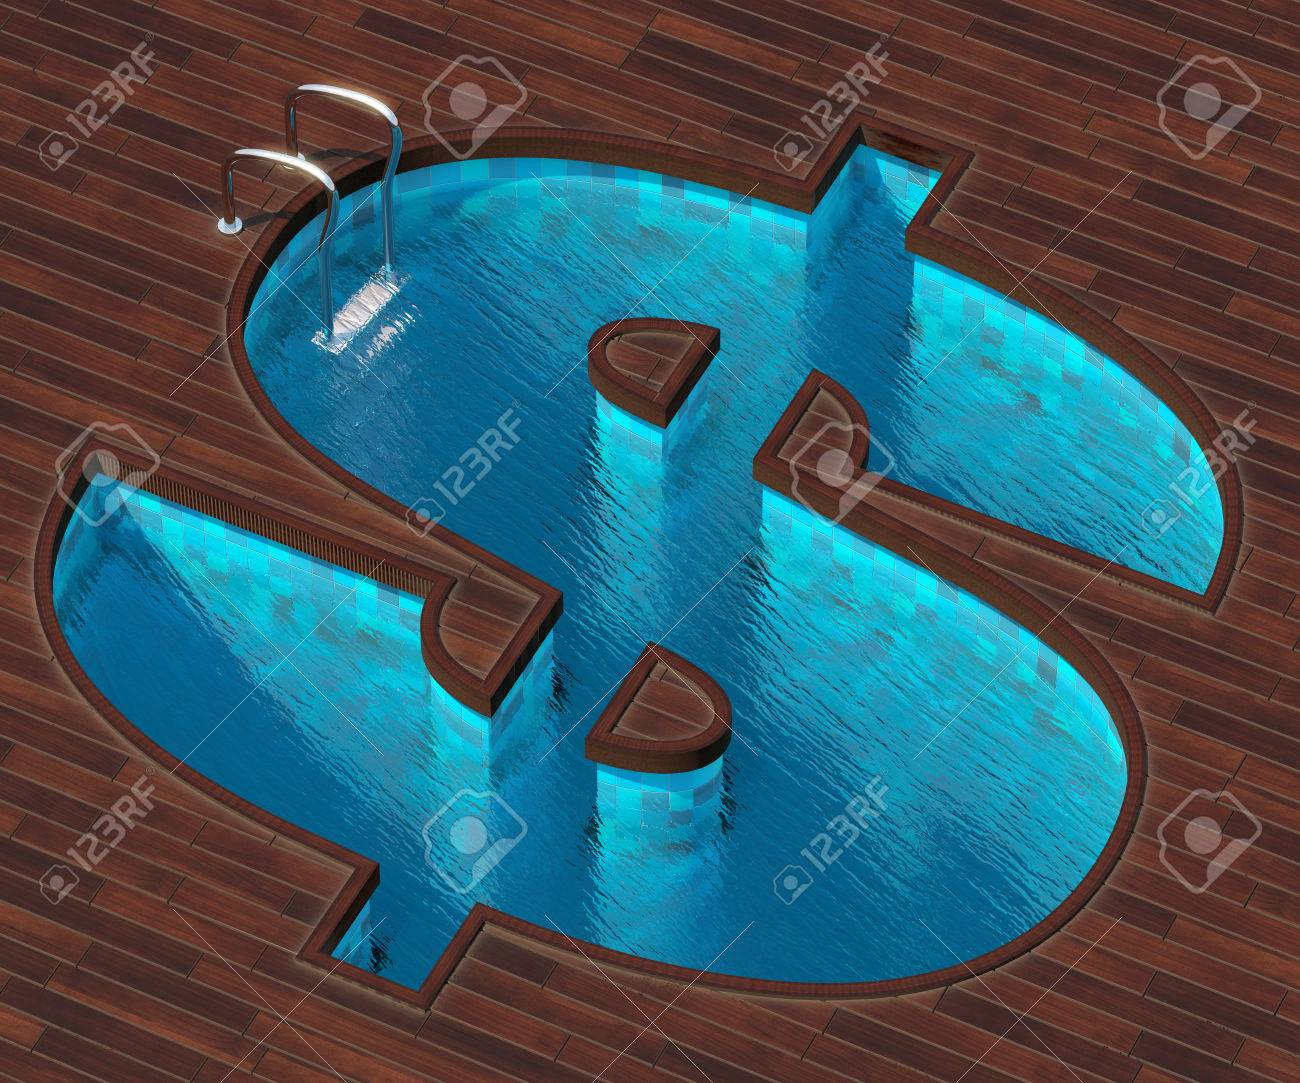 The Picture Combines The Image Of Dollar Icon And A Cool Pool